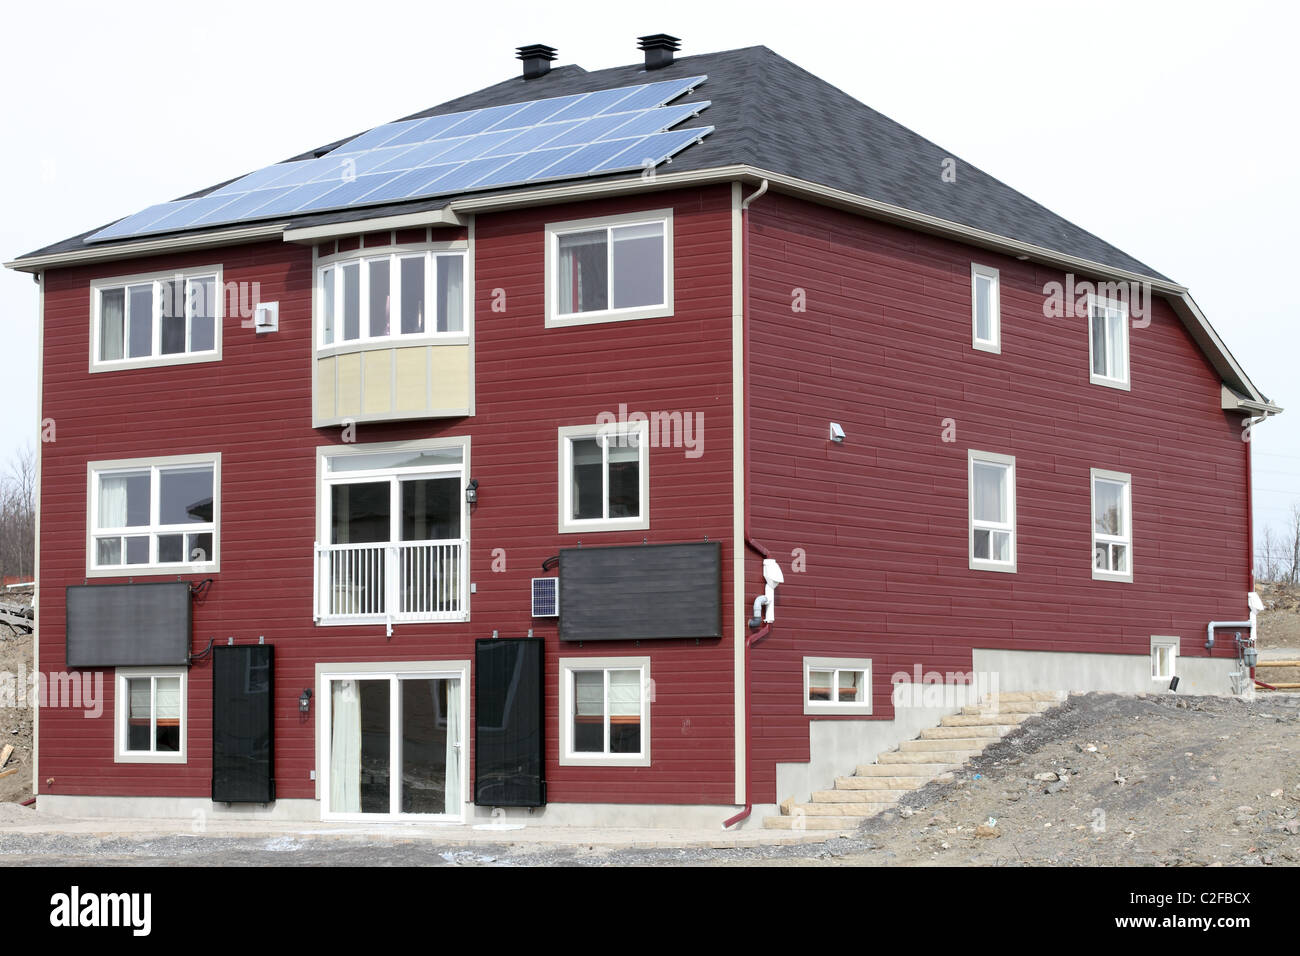 New Home Showcasing Green Energy With Solar Panels On The Roof And Solar Water Heaters On The Wall - Stock Image